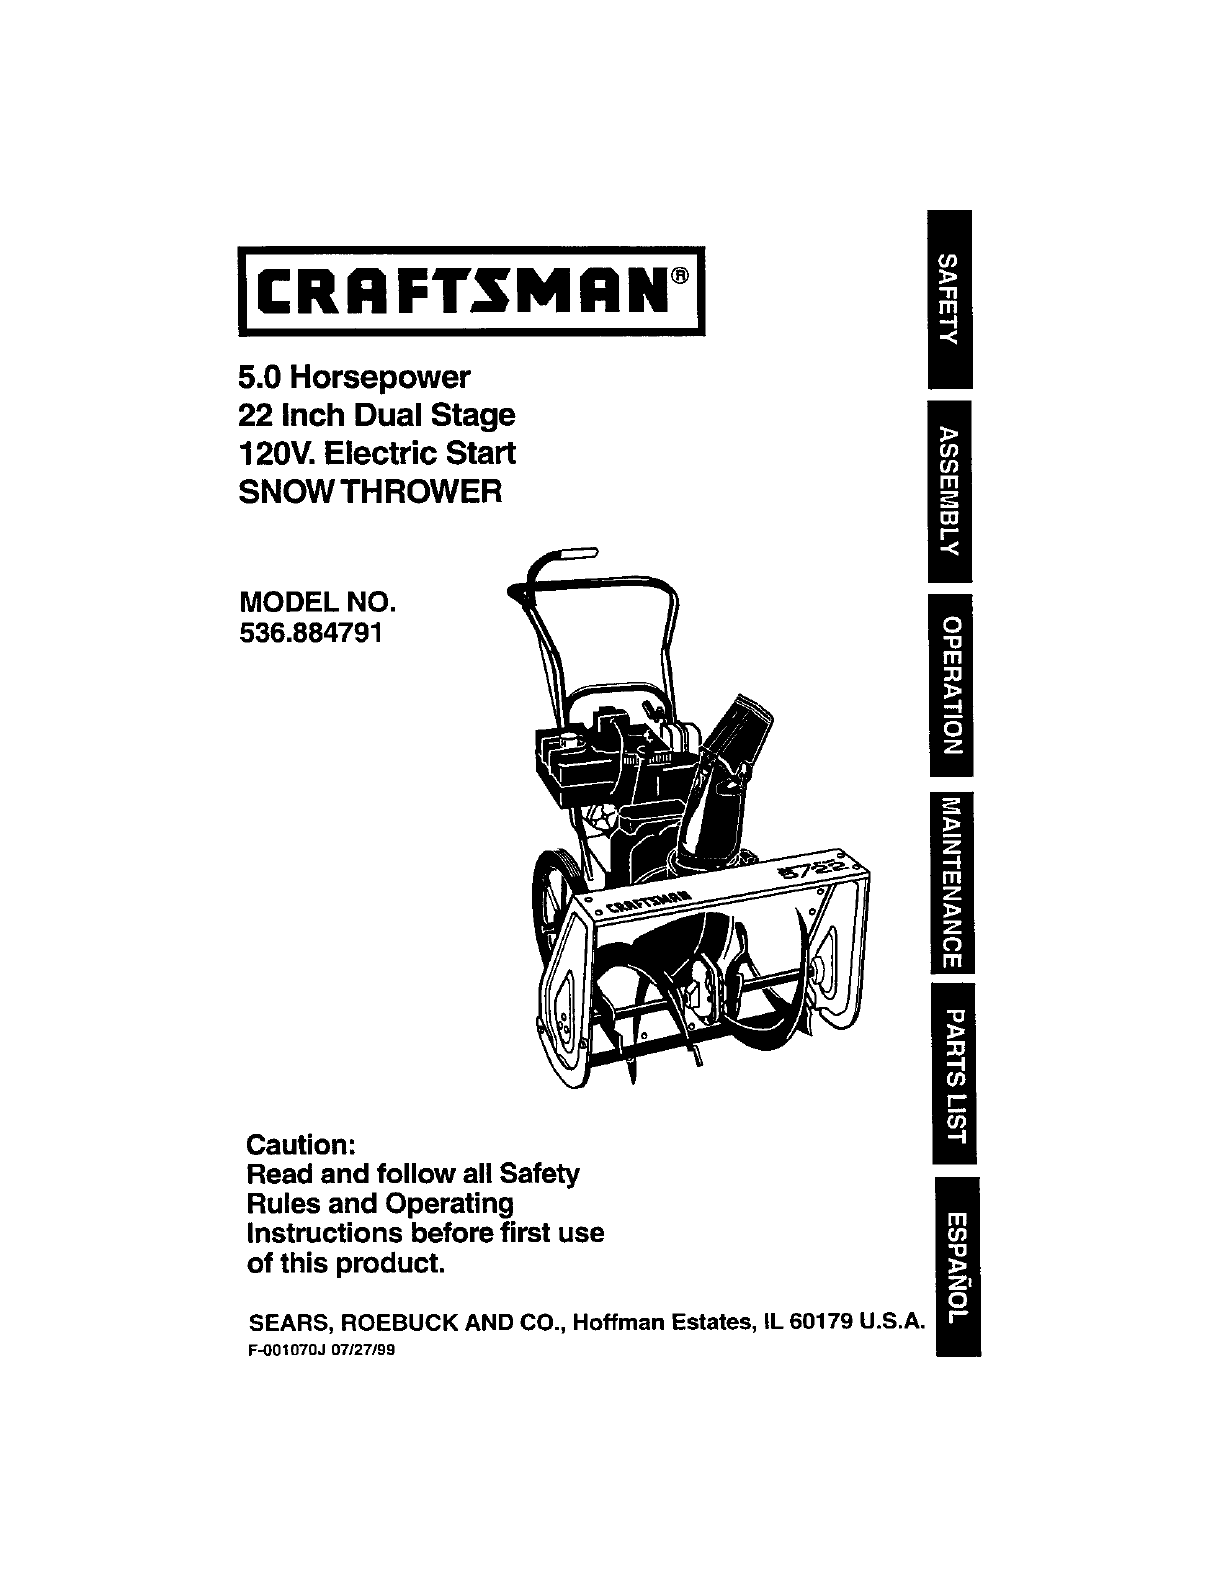 Craftsman Snow Blower 536,884,791 User Guide